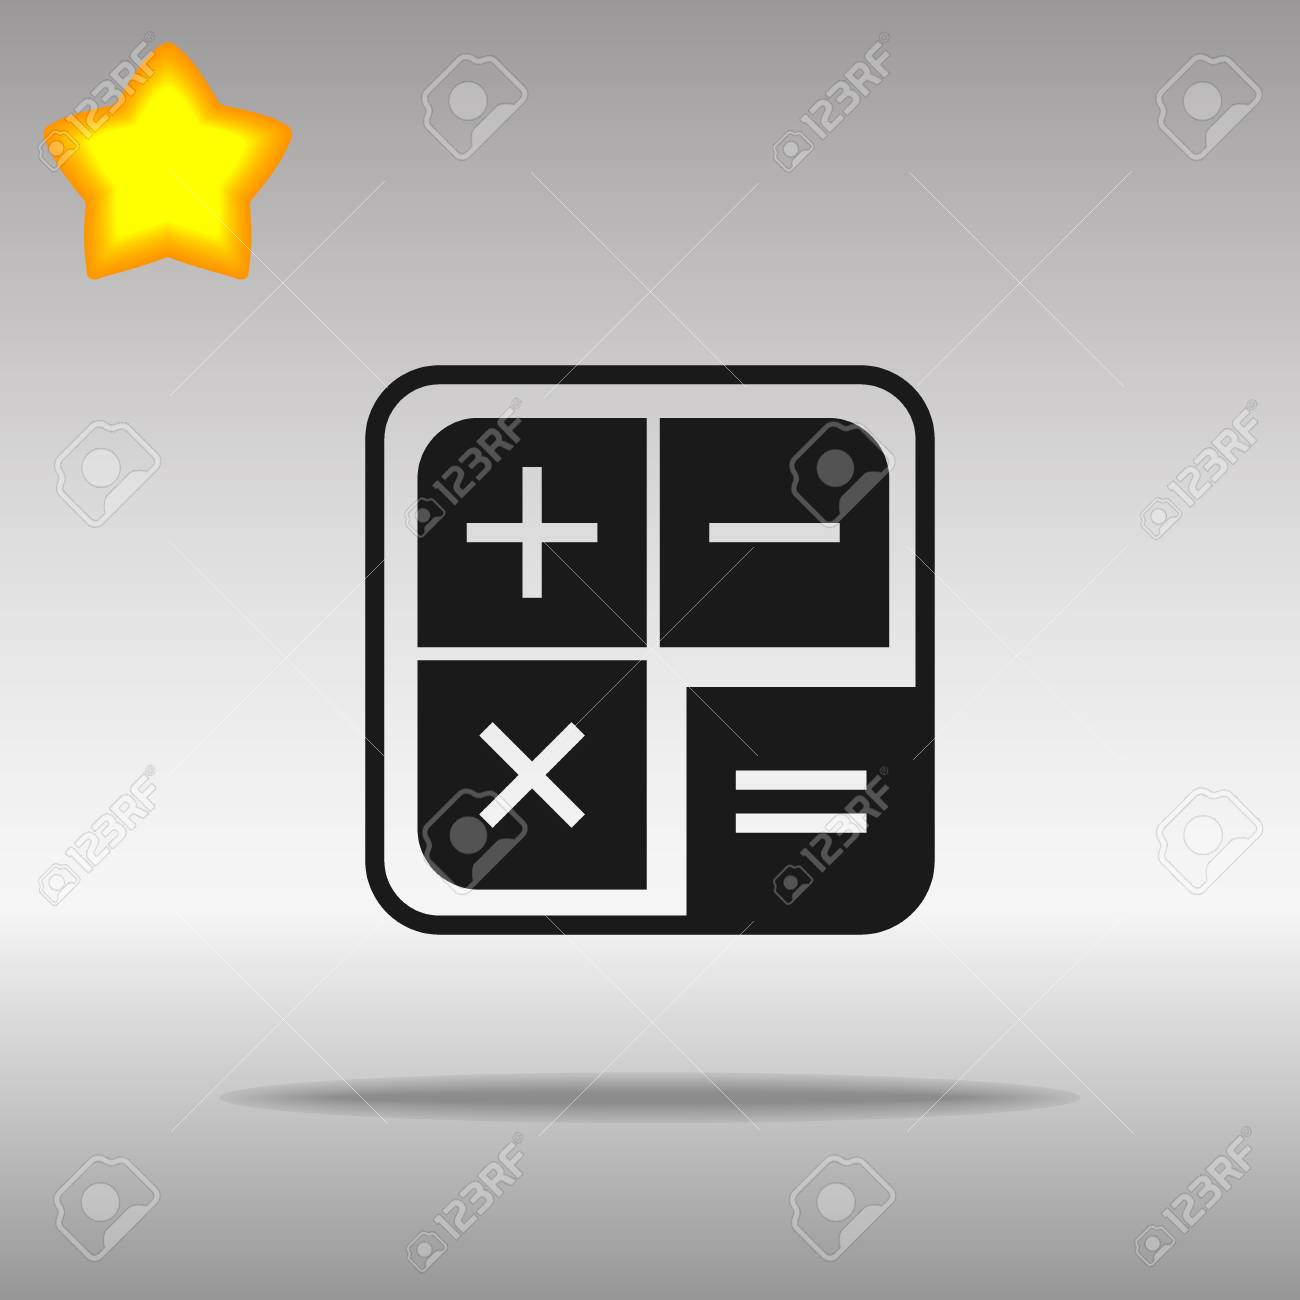 black calculator Icon button logo symbol concept high quality on the gray background - 82176455